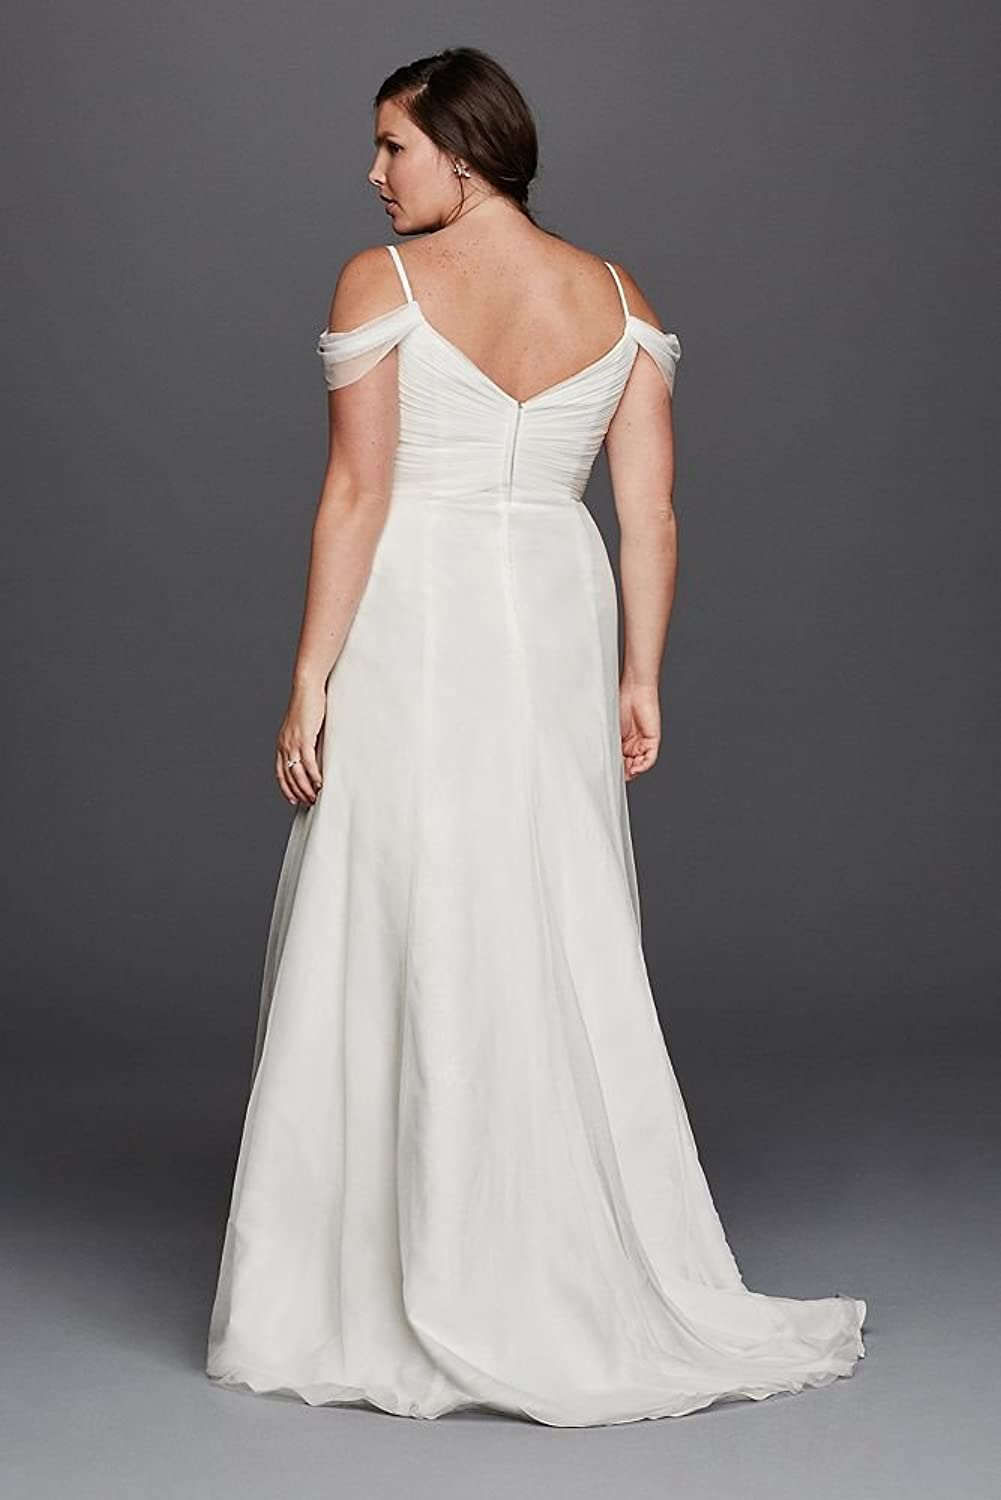 Davids bridal a line plus size wedding dress with swag sleeves davids bridal a line plus size wedding dress with swag sleeves style 9wg3779 soft white 18w at amazon womens clothing store junglespirit Image collections